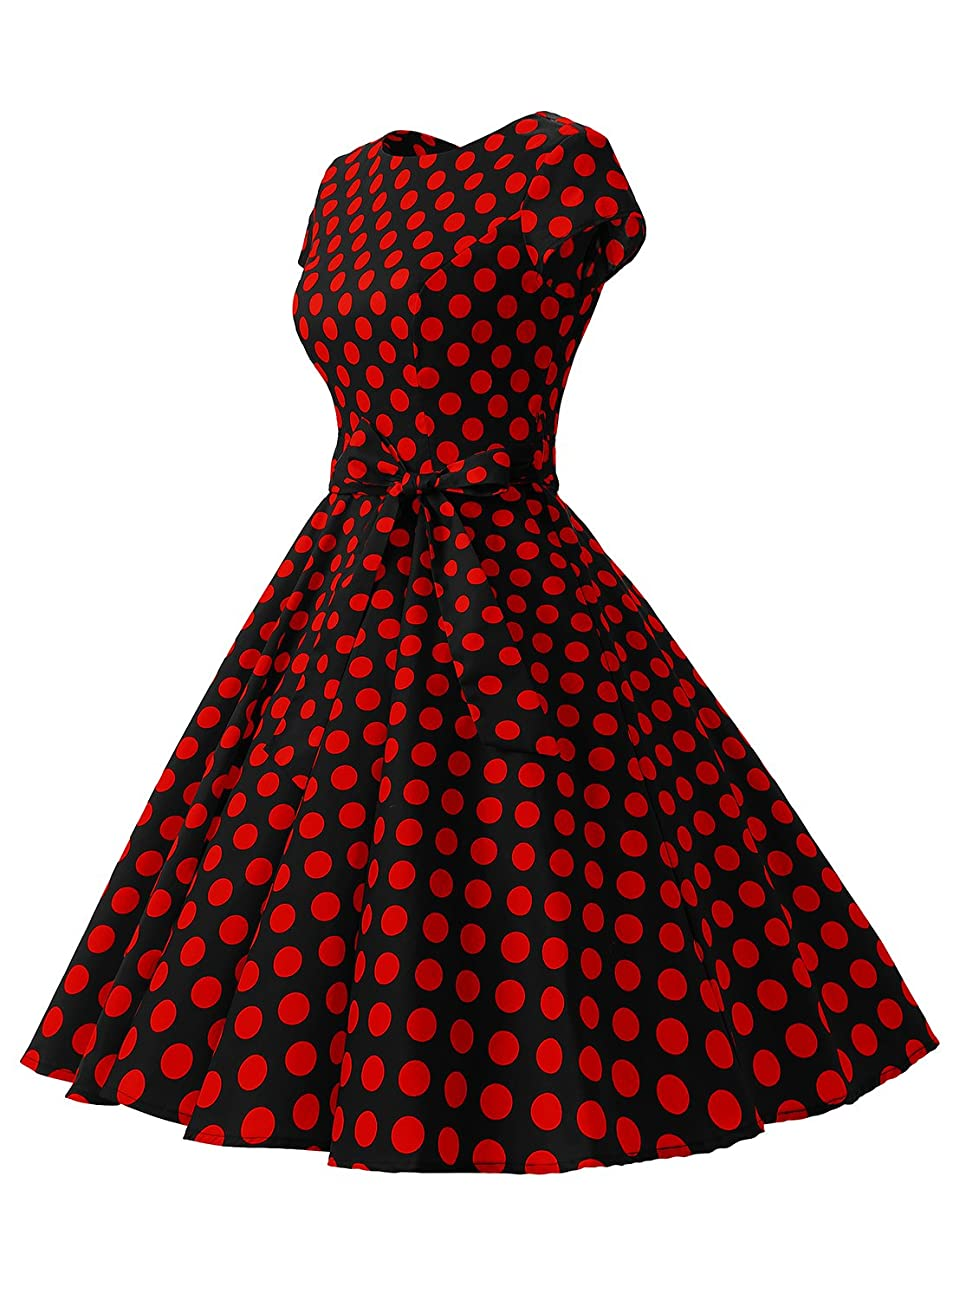 Dressystar Vintage 1950s Polka Dot and Solid Color Party Prom Dresses Rockabilly Cap Sleeves 1